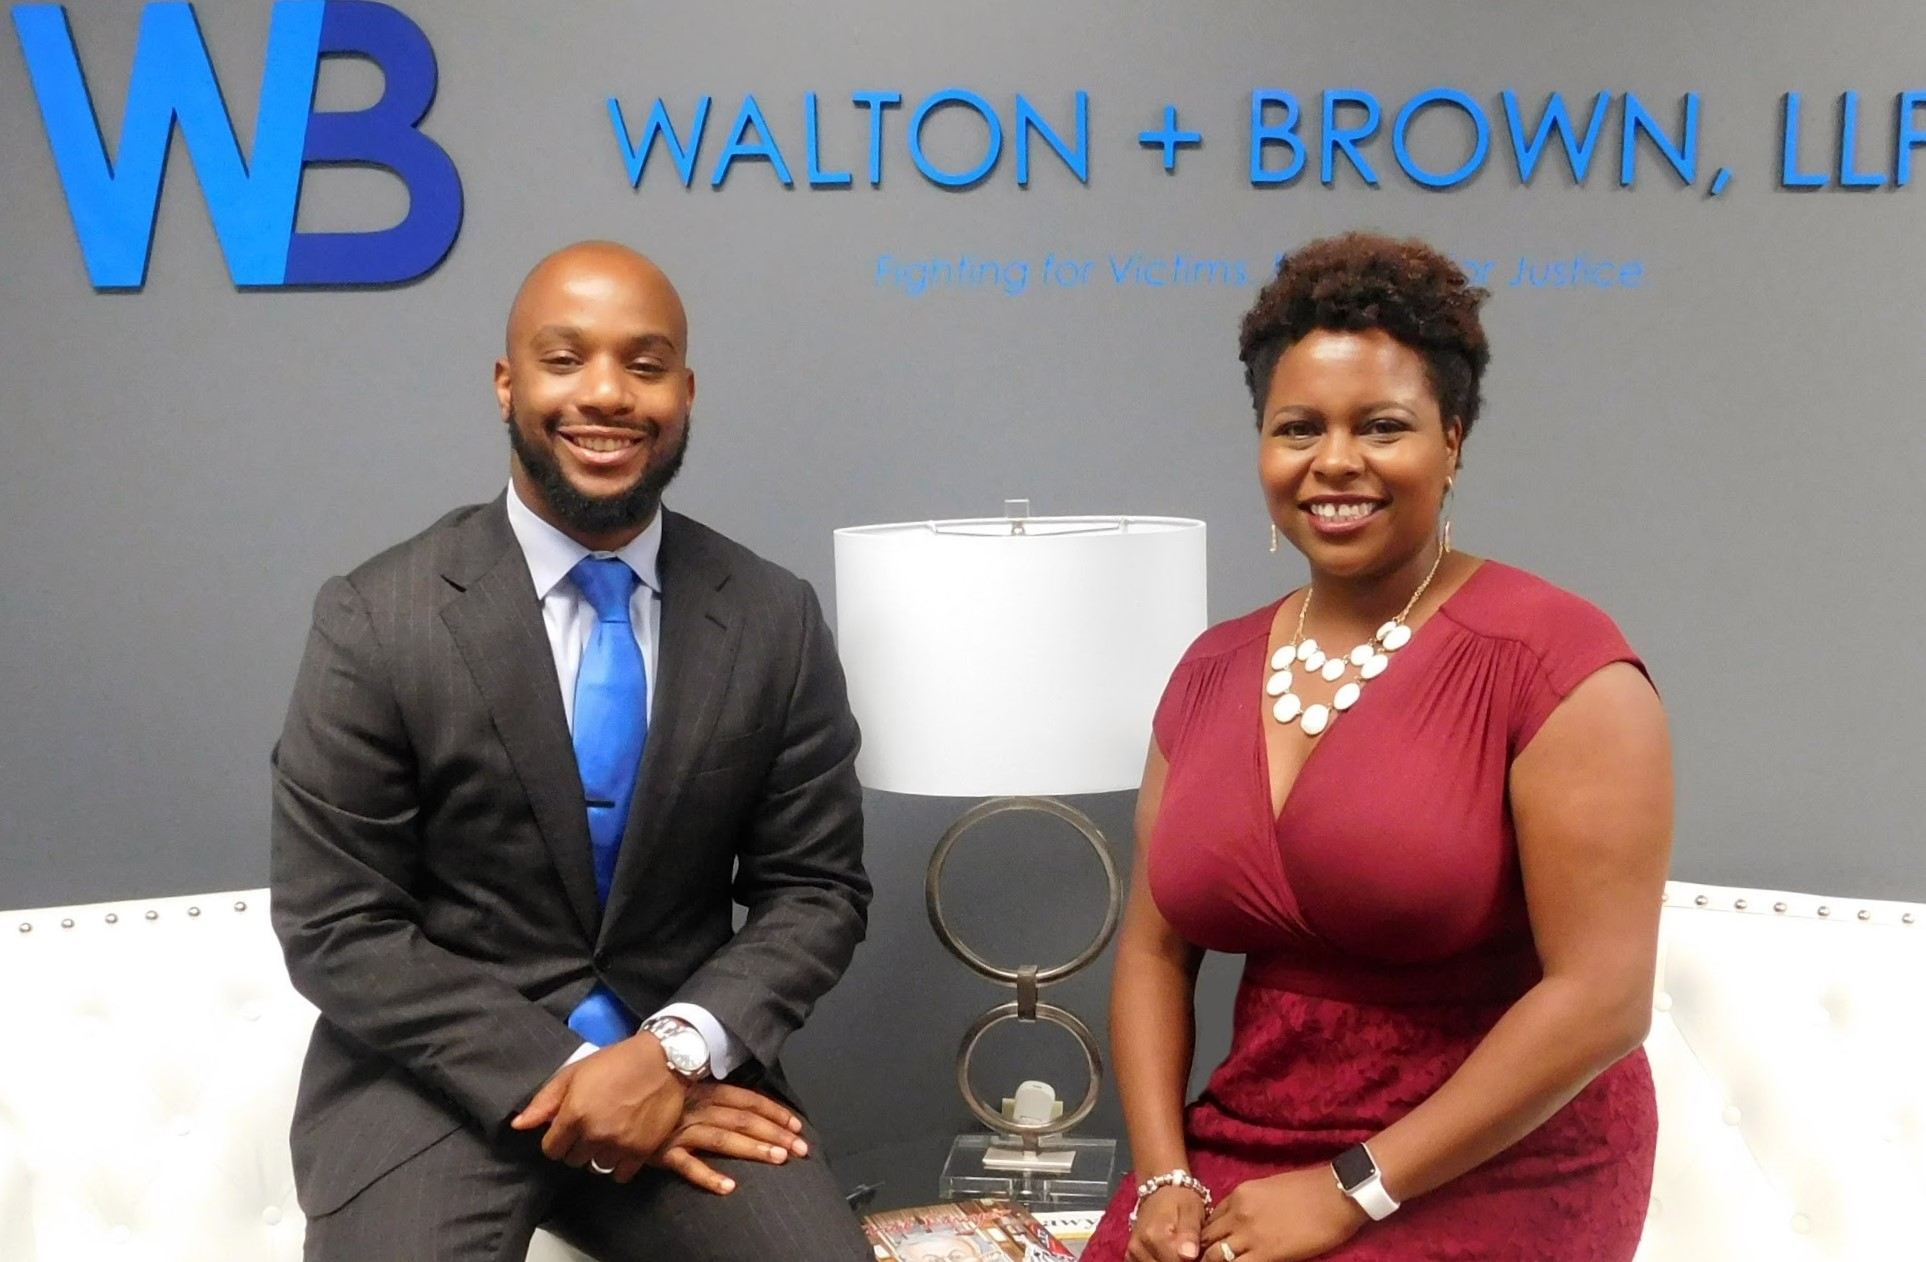 Sean Walton, Chanda Brown, Rising Stars, Ohio Attorneys, Super Lawyers, Walton + Brown LLP, Wrongful Death Lawyers